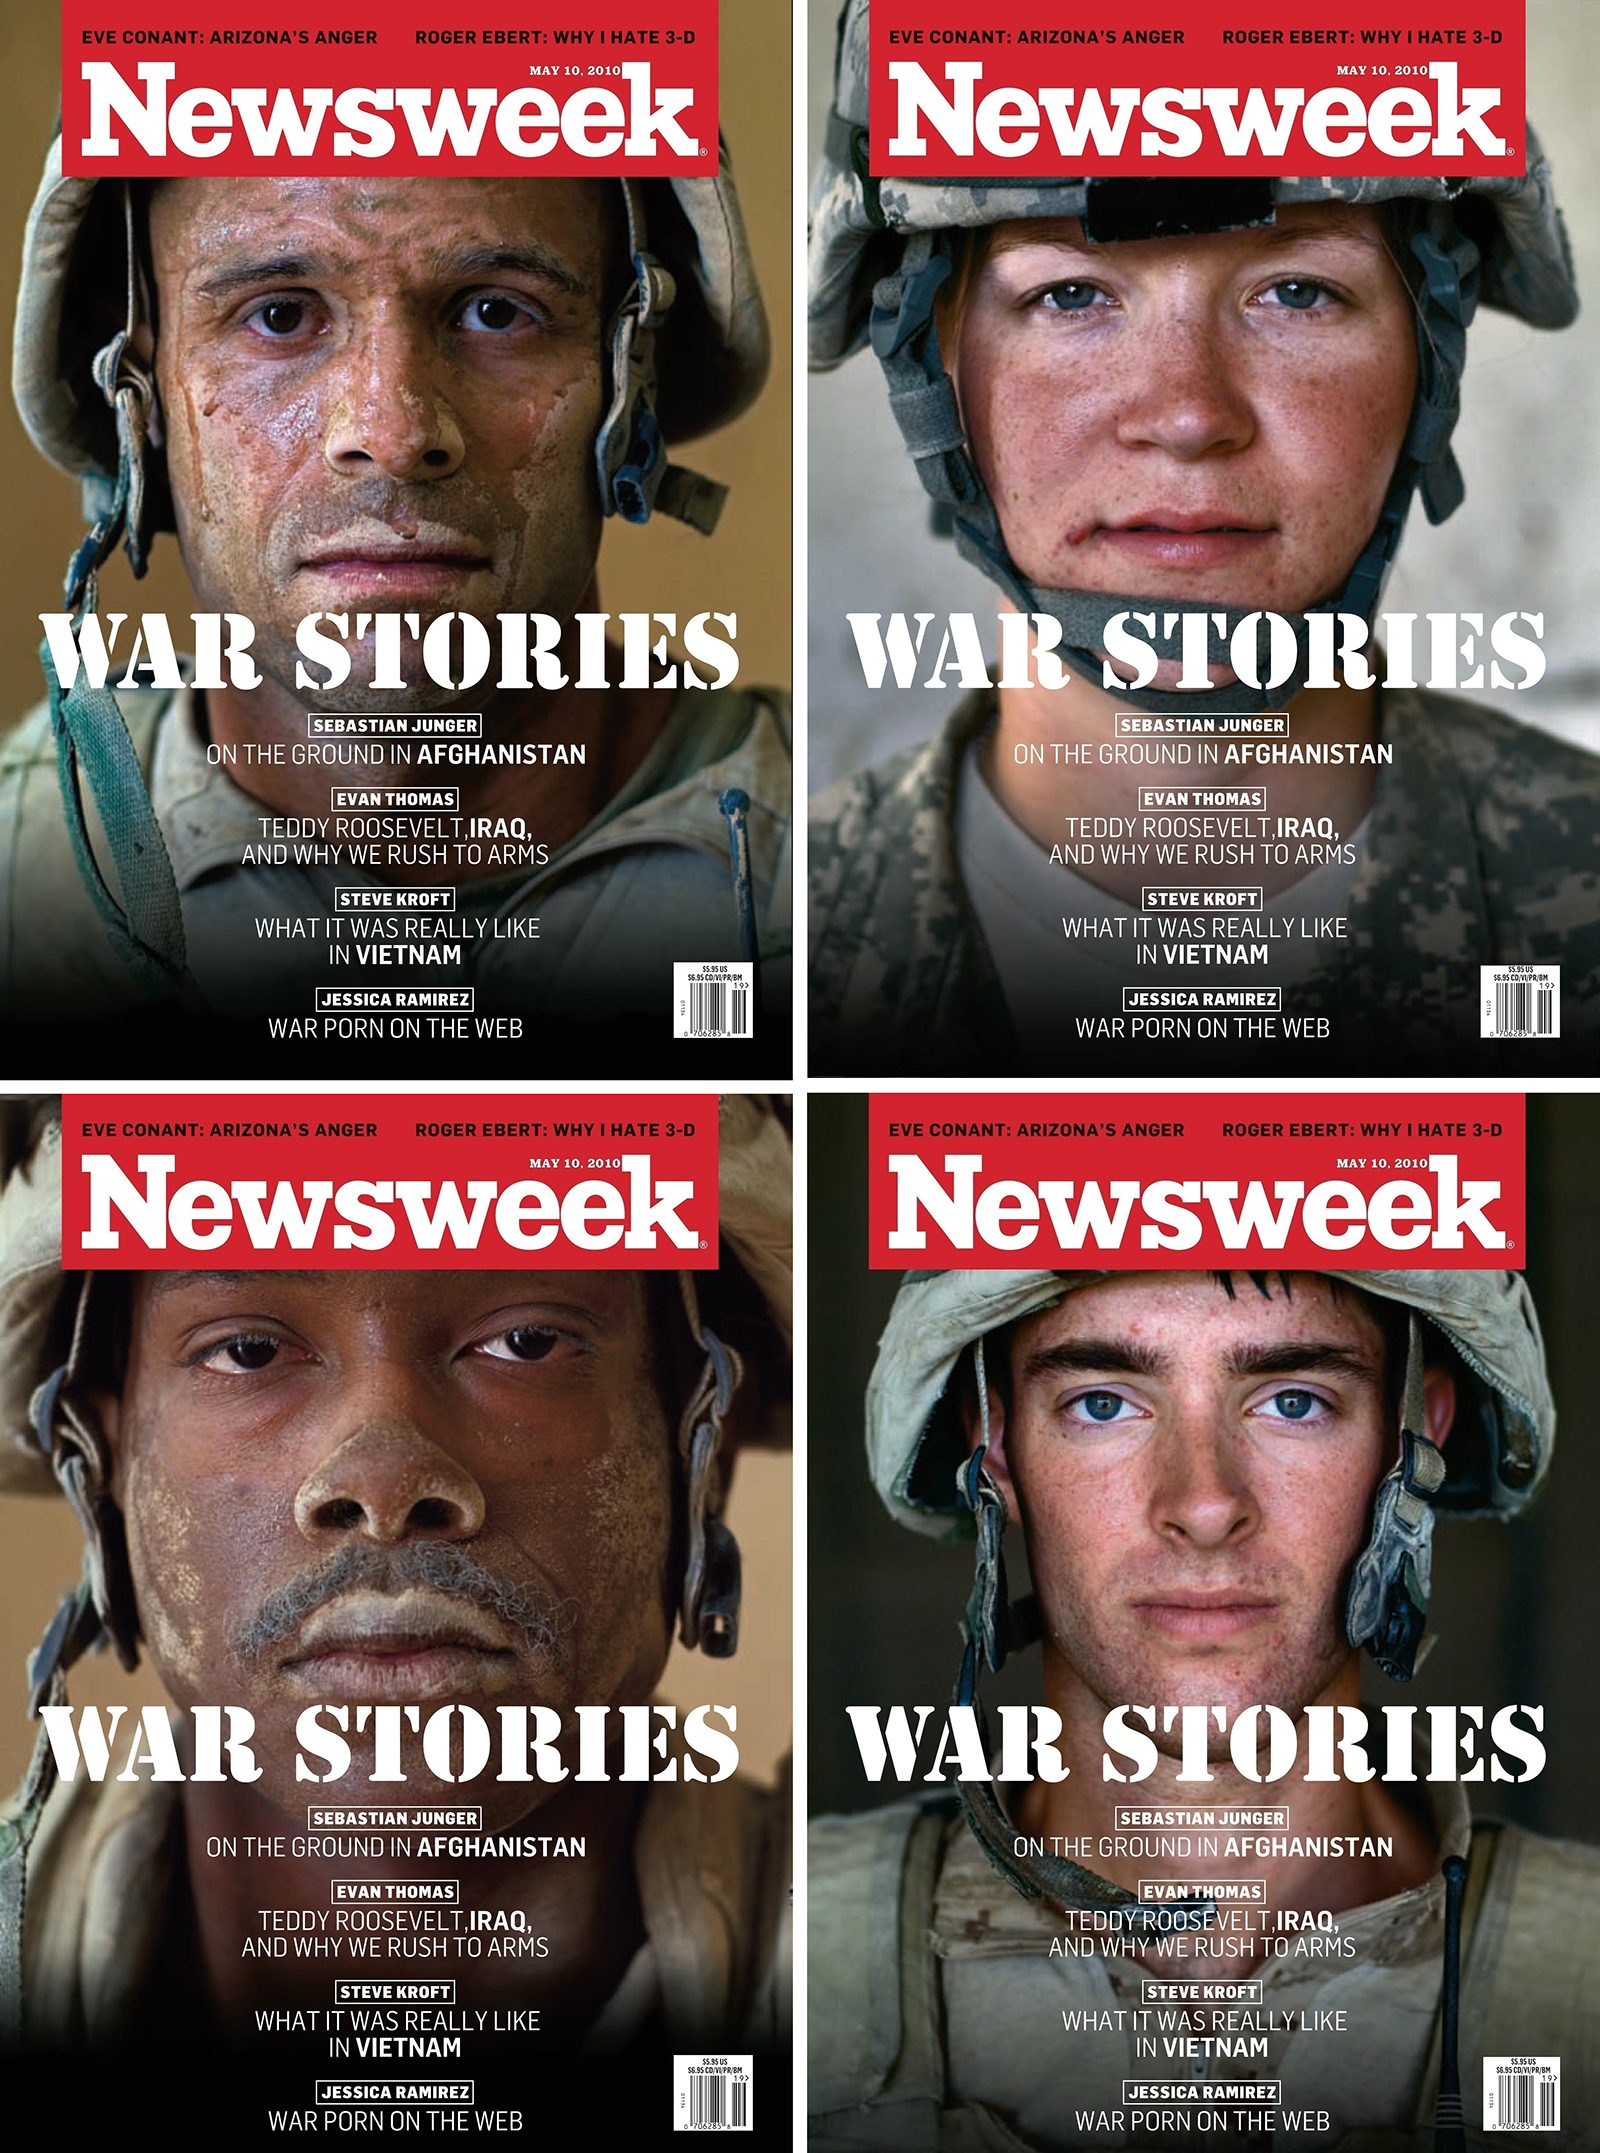 The four covers of the May 10, 2010 issue of  Newsweek